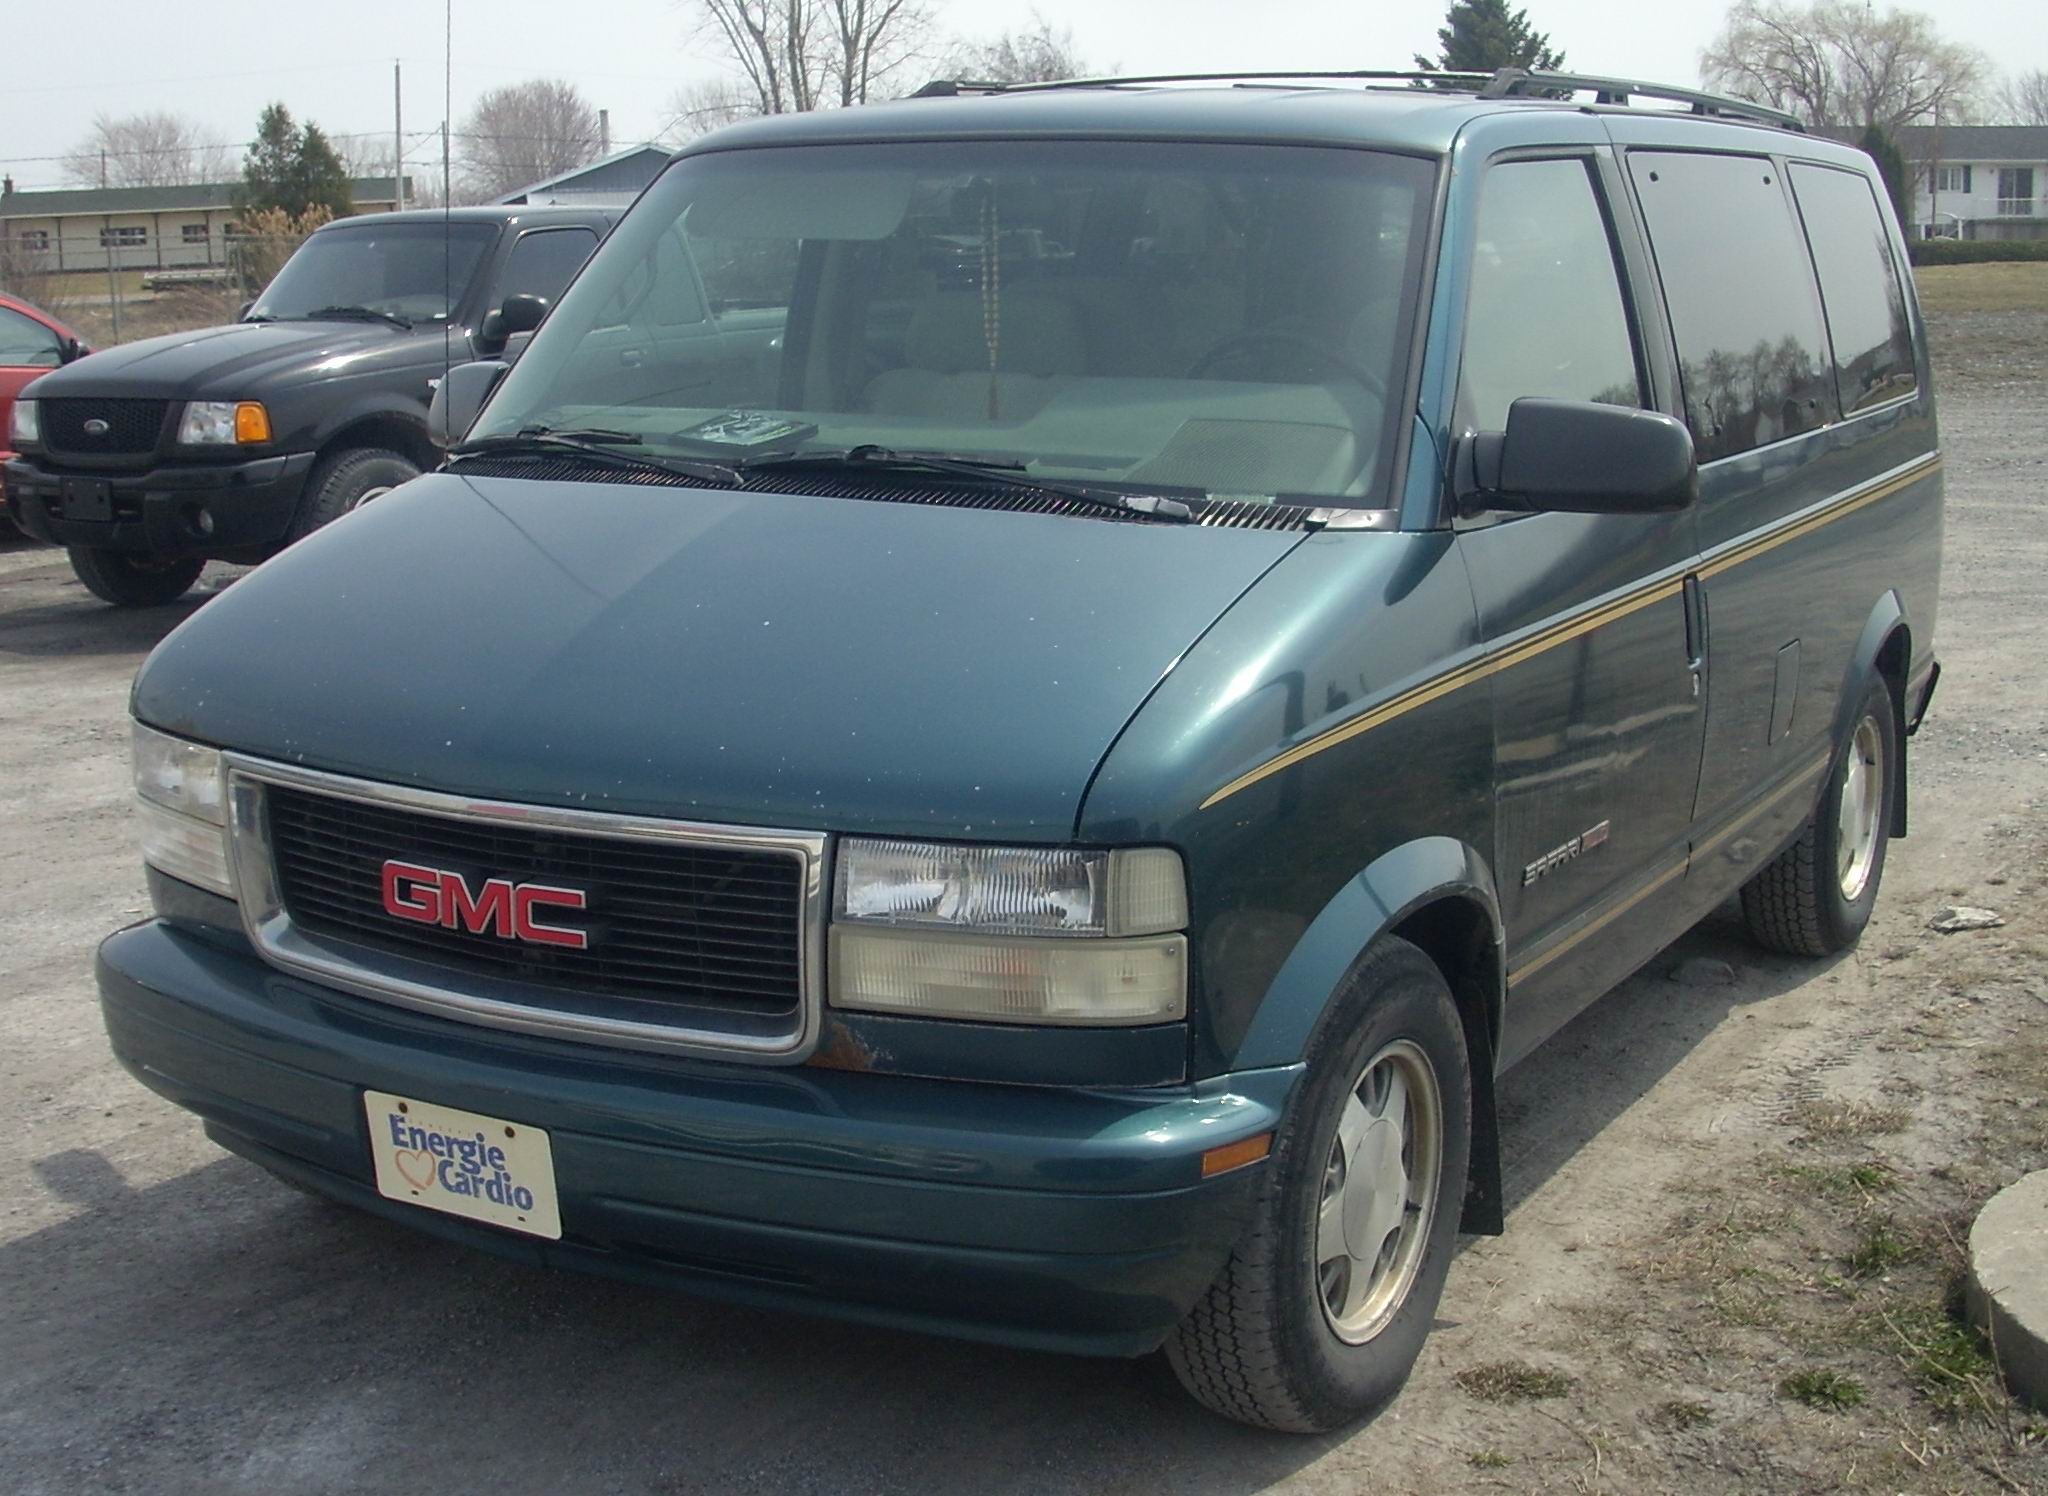 gmc safari images #2